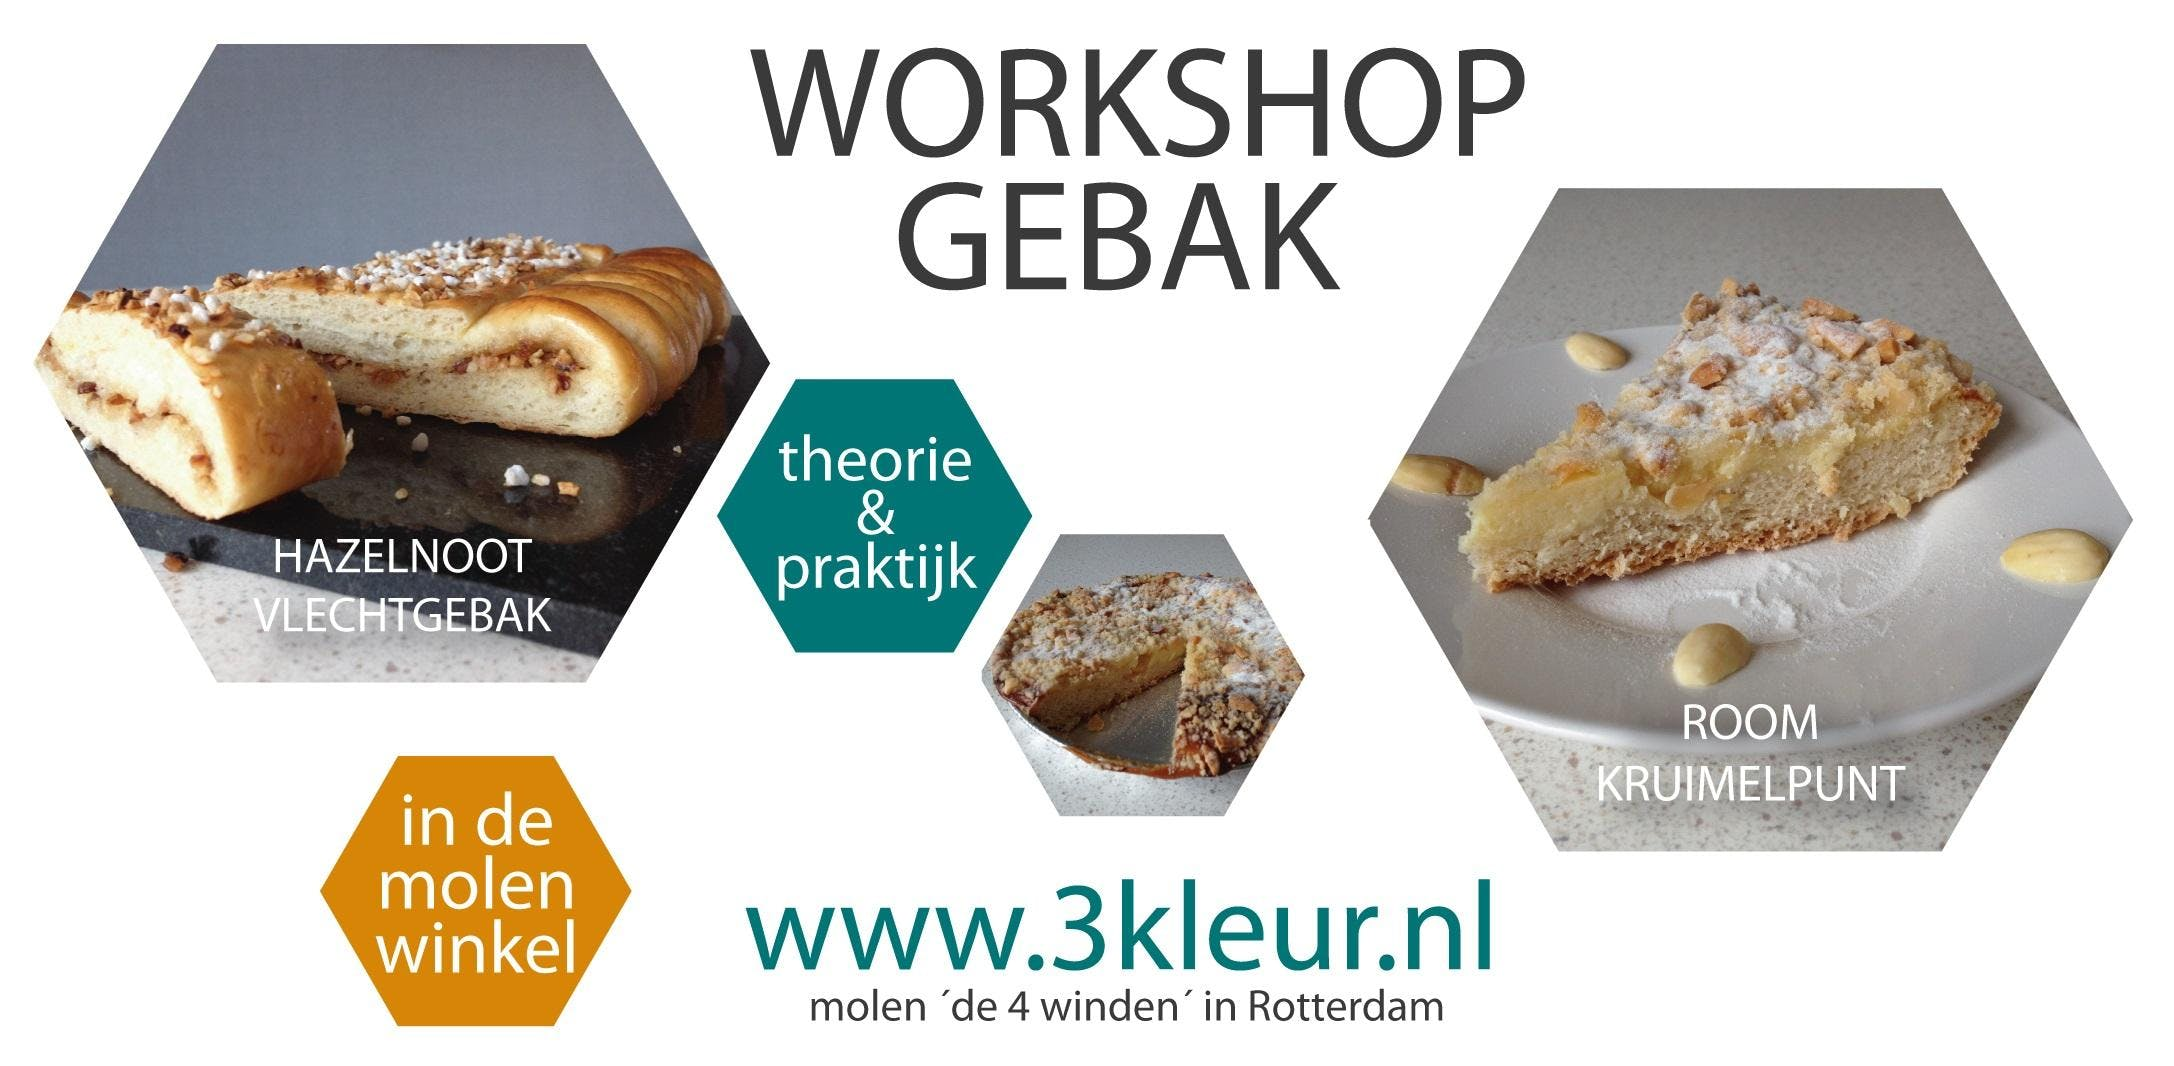 Workshop Gebak ~ room-kruimeltaart en noten-v